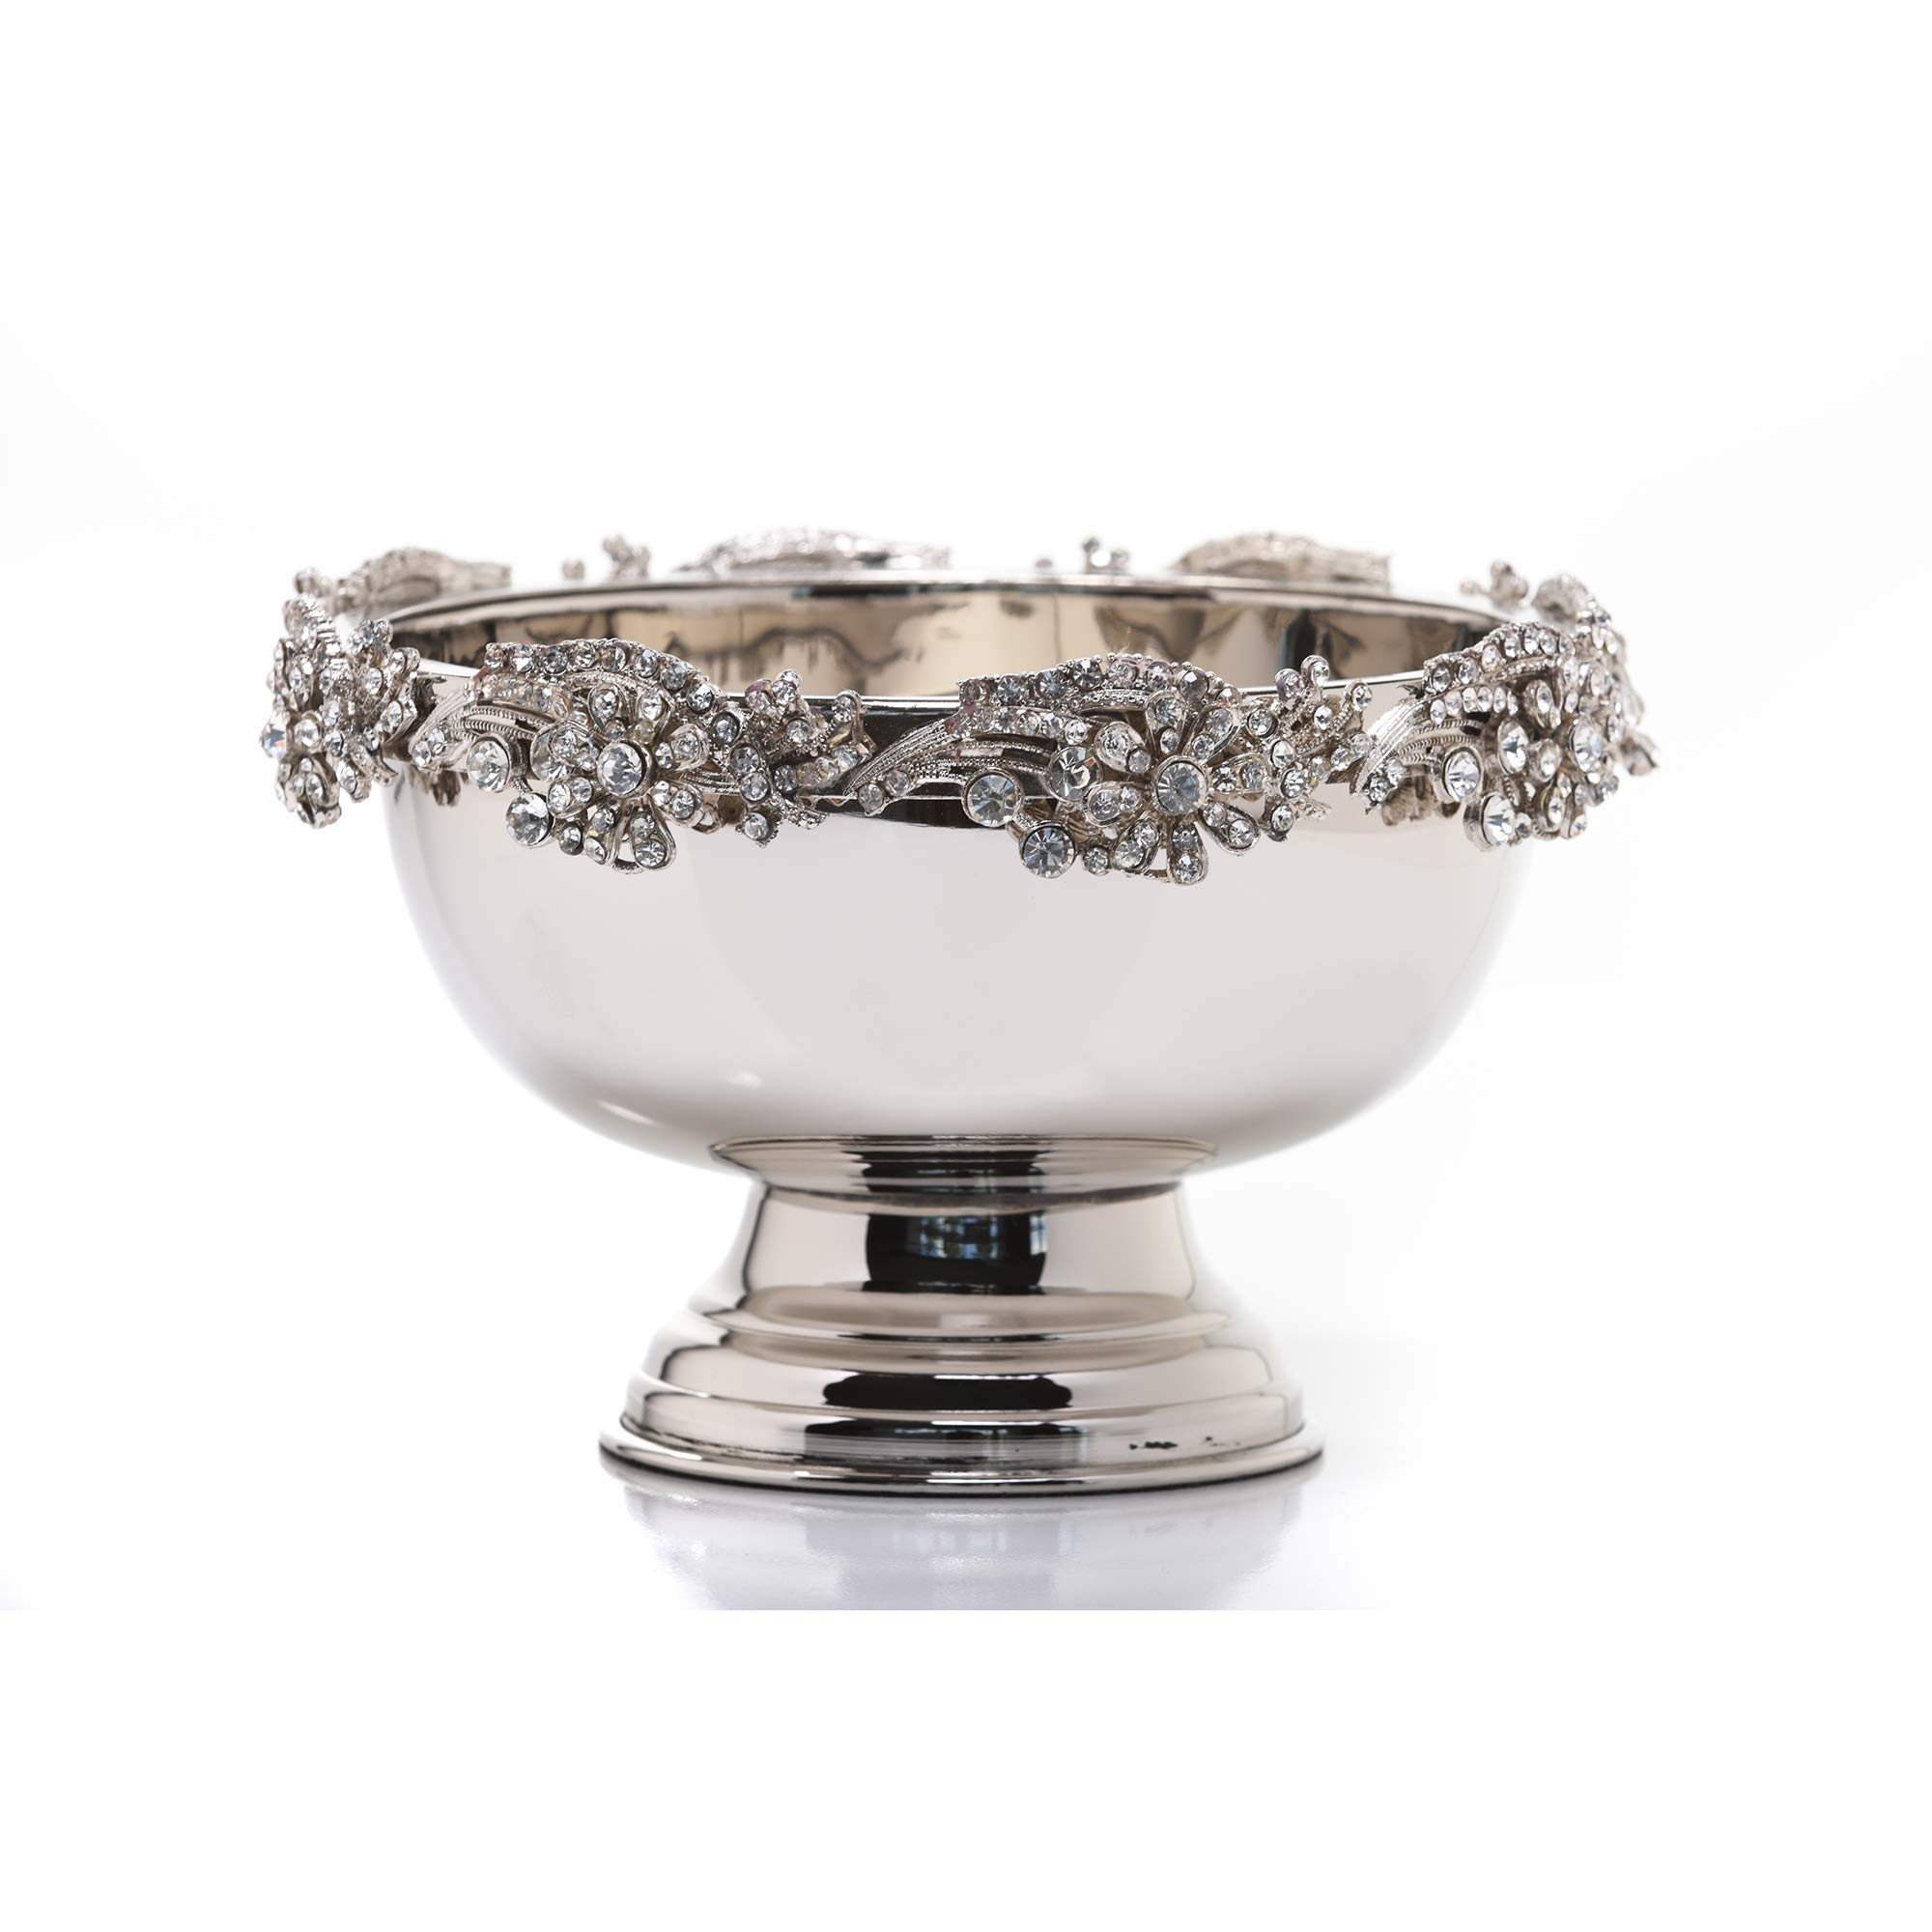 IMPULSE! Diamond Studded Stainless Steel Punch Bowl, Champagne Beer Wine Cooler, Large Centerpiece Bowl